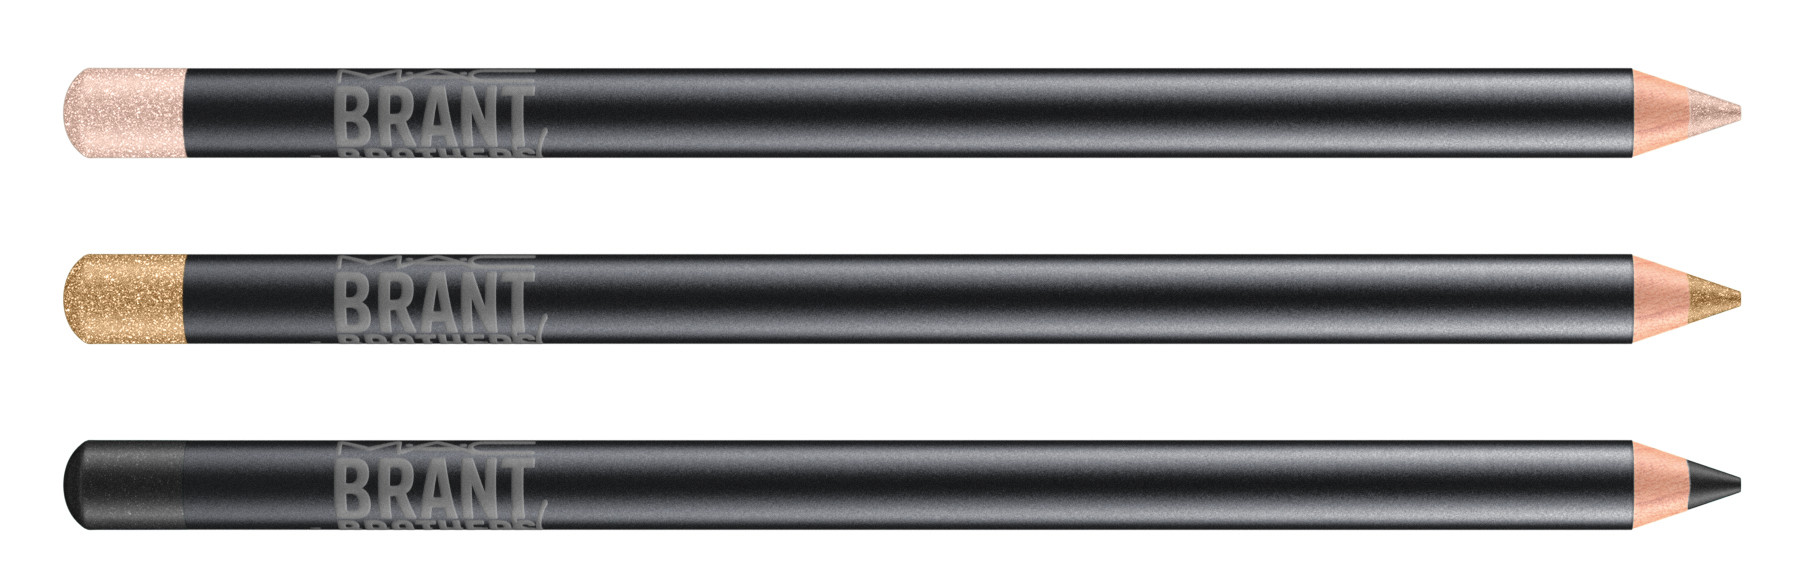 MAC Cosmetics Brant Brothers Eye Khol Liner Pencils